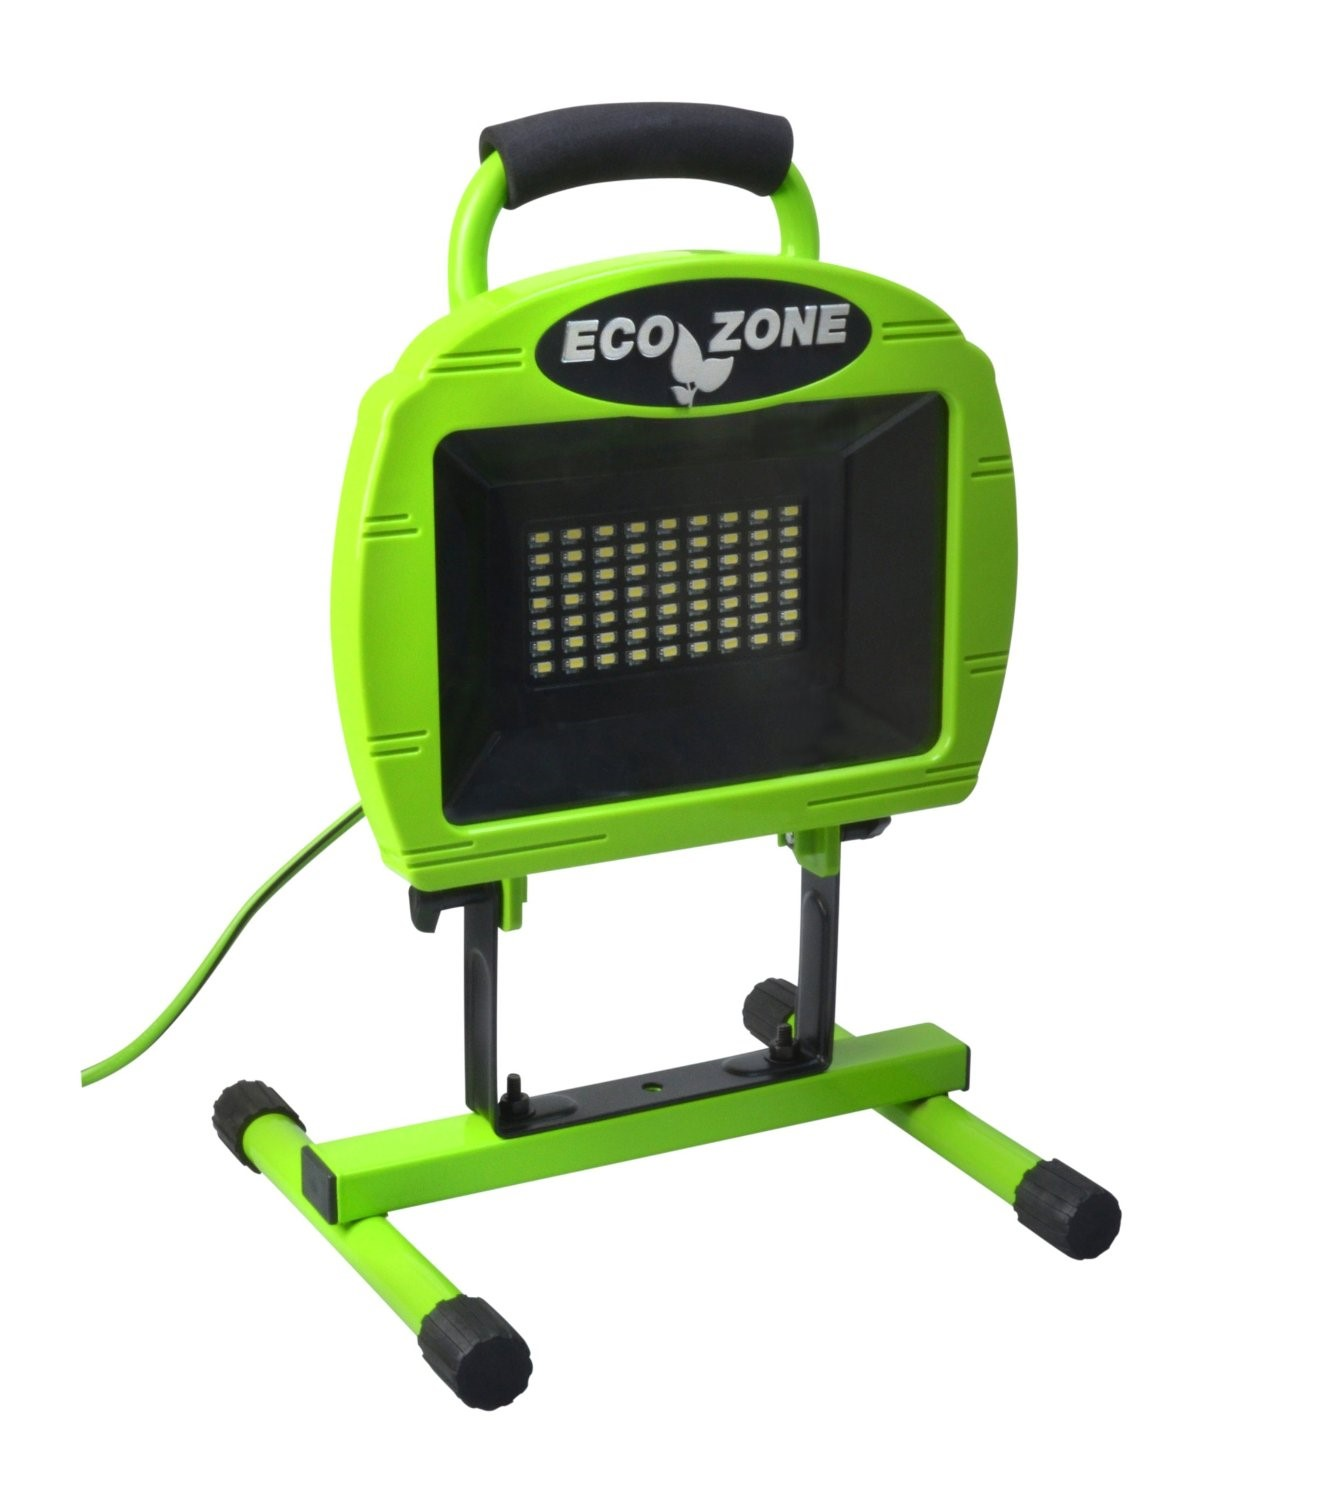 Designers Edge By Coleman Cable L1325 Ecozone Portable: Buy The Coleman Cable L1315 Eco-Zone Portable Work Light